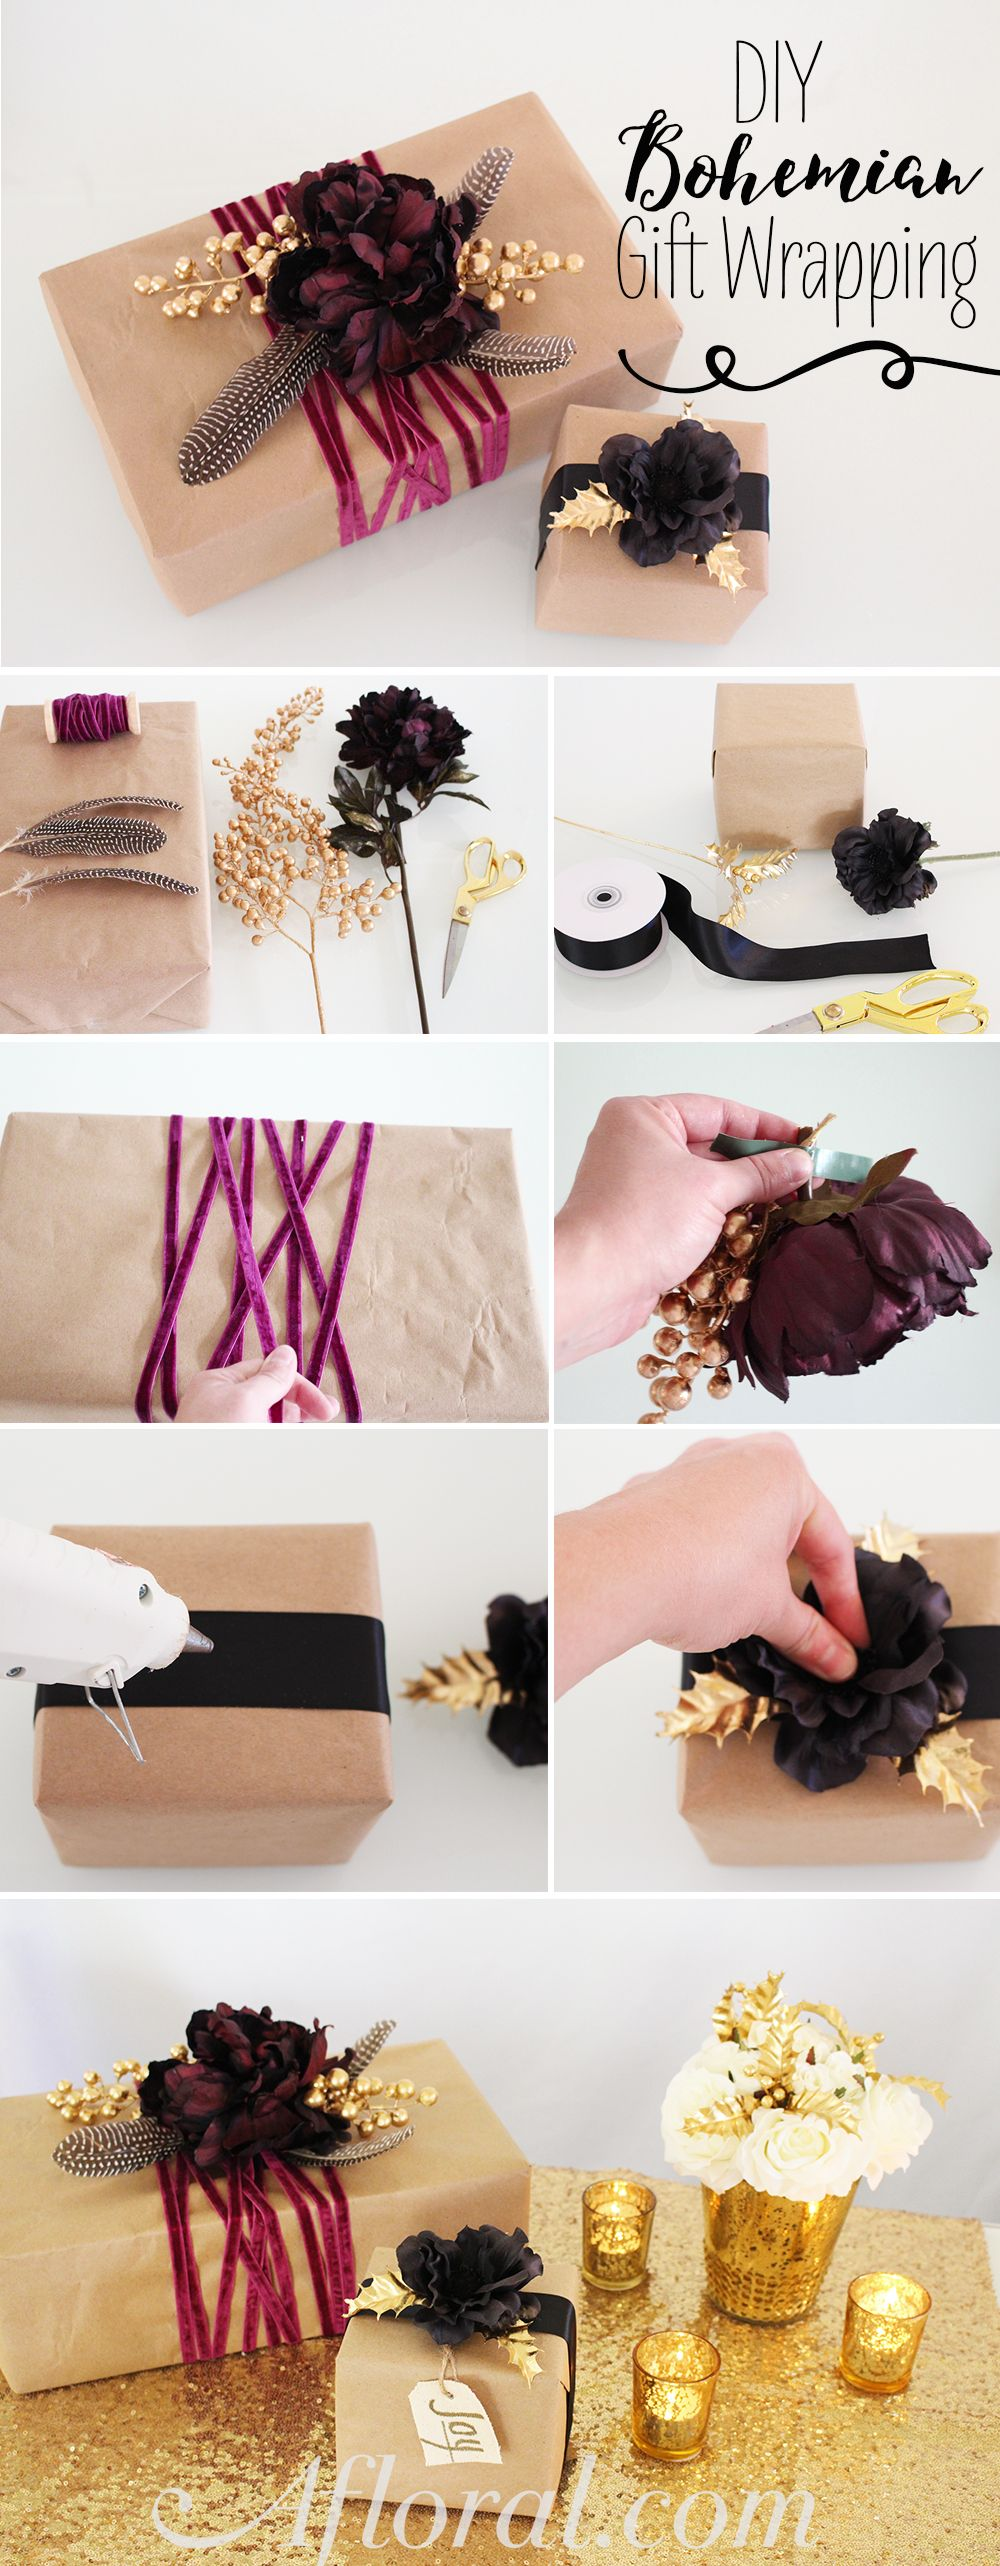 Diy Gift Wrapping Holiday Decor Pinterest Silk Flowers Themed